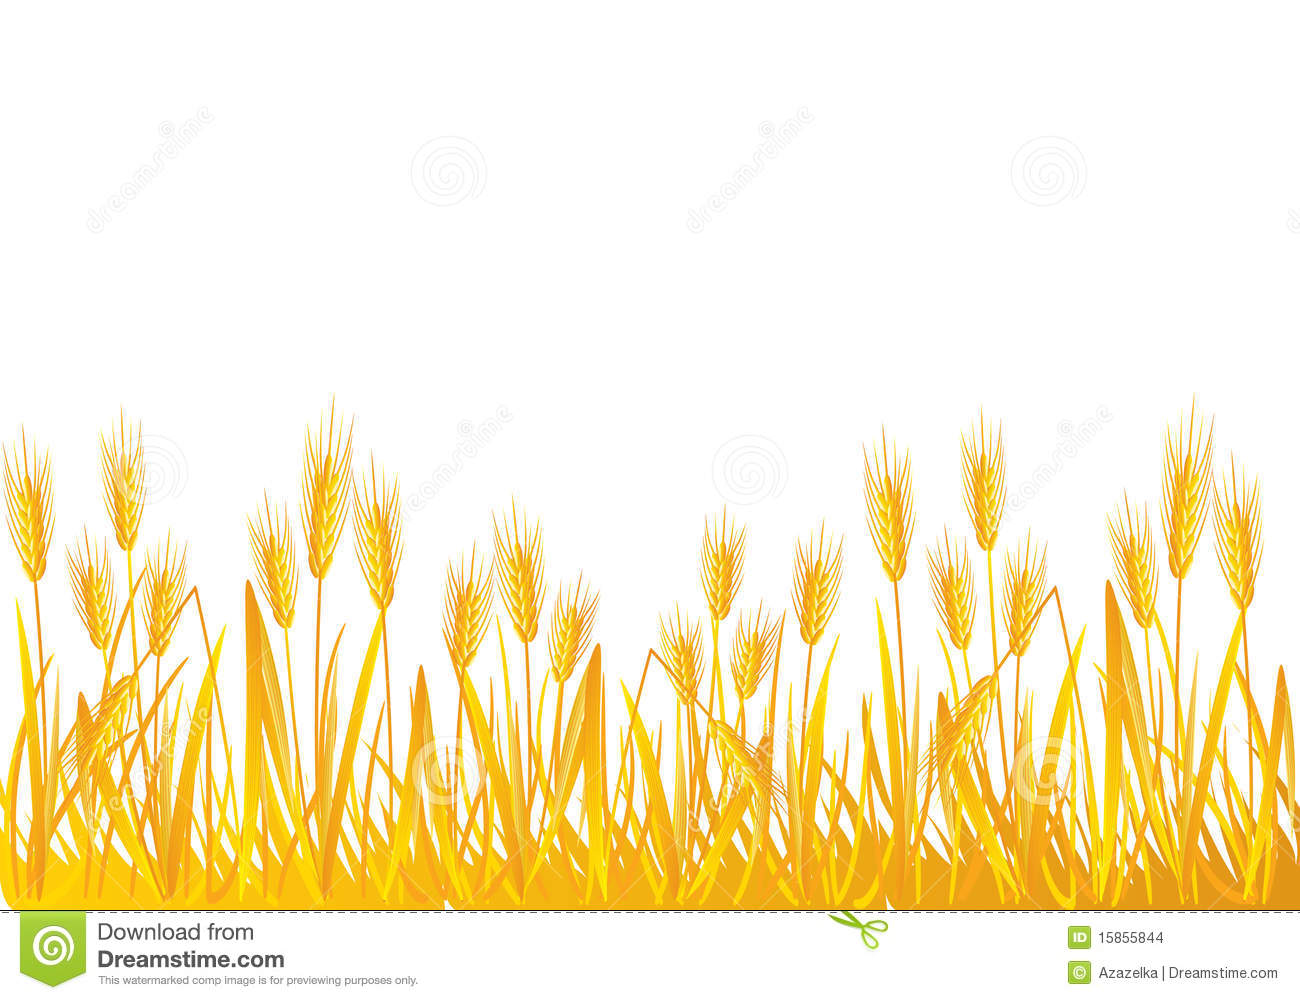 Grain fields clipart - Clipground